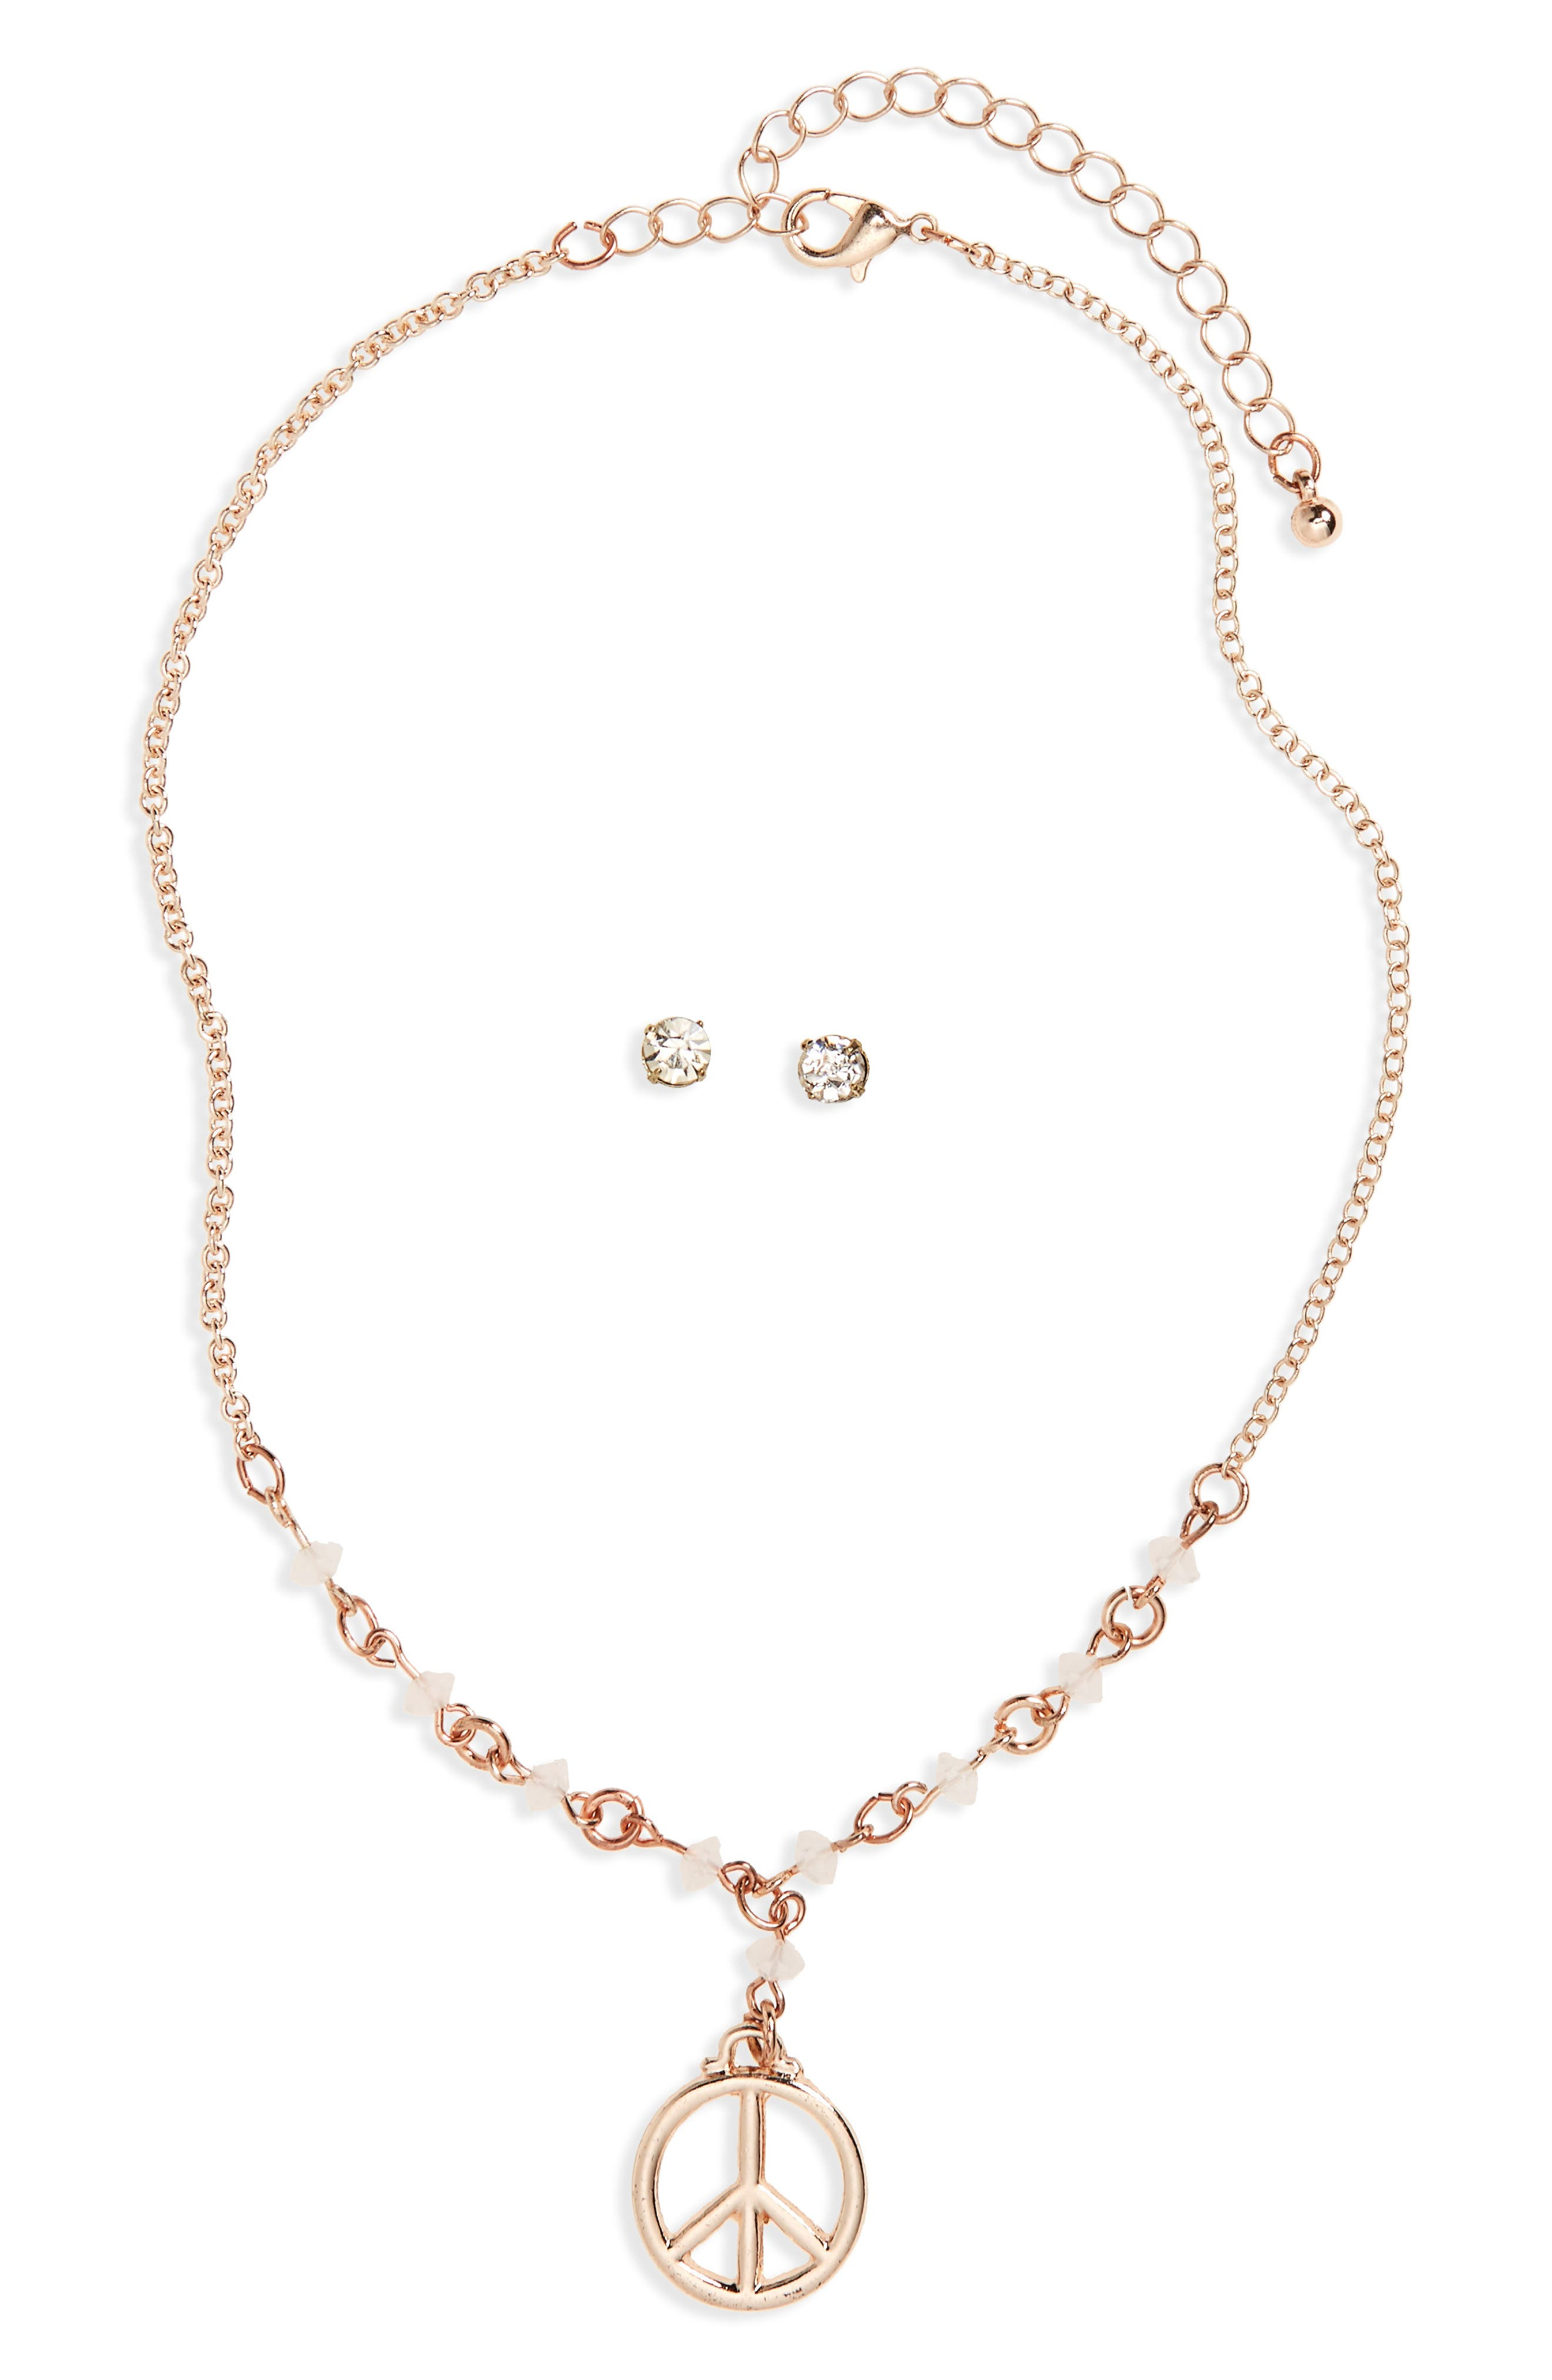 Party Time Pendant Necklace & Earrings Set,                         Main,                         color, Rose Gold